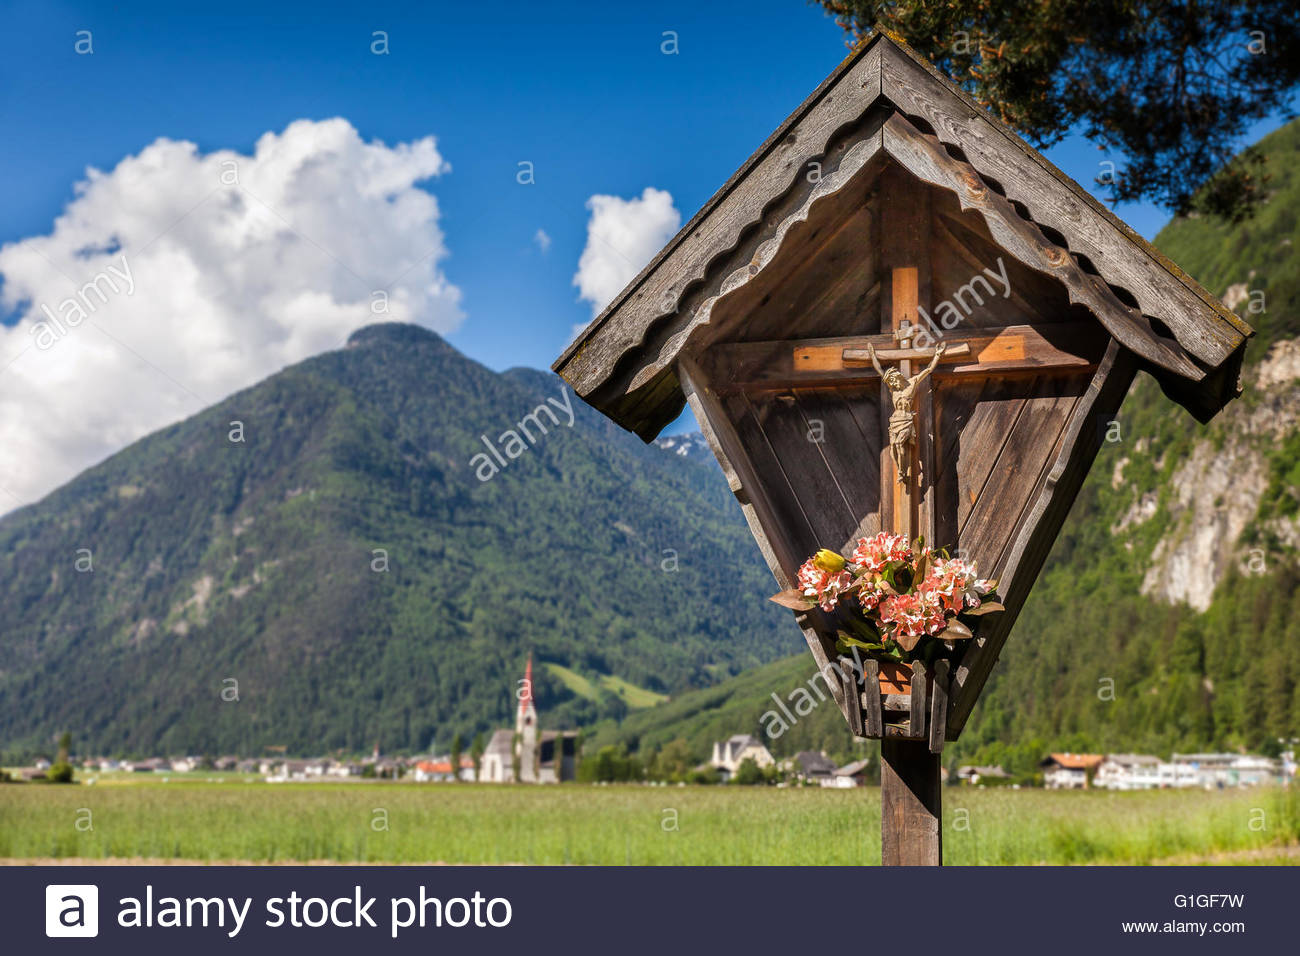 Christian wayside shrine in Campo Tures, South Tyrol, Italy - Stock Image